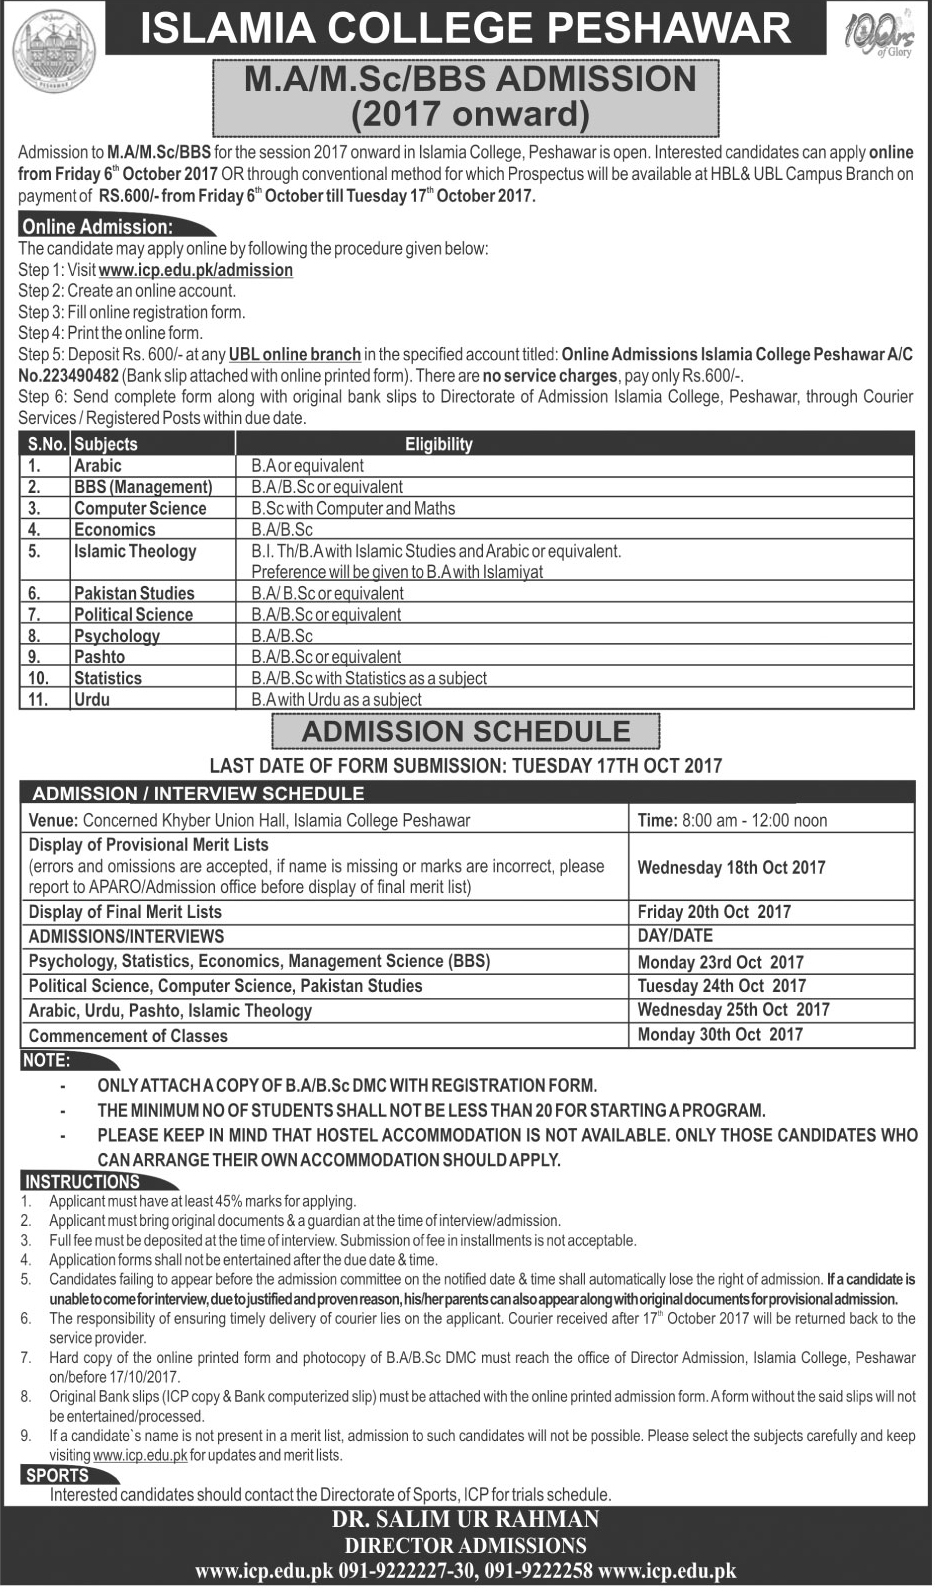 Admissions Open in Islamia College University Peshawar - 2017